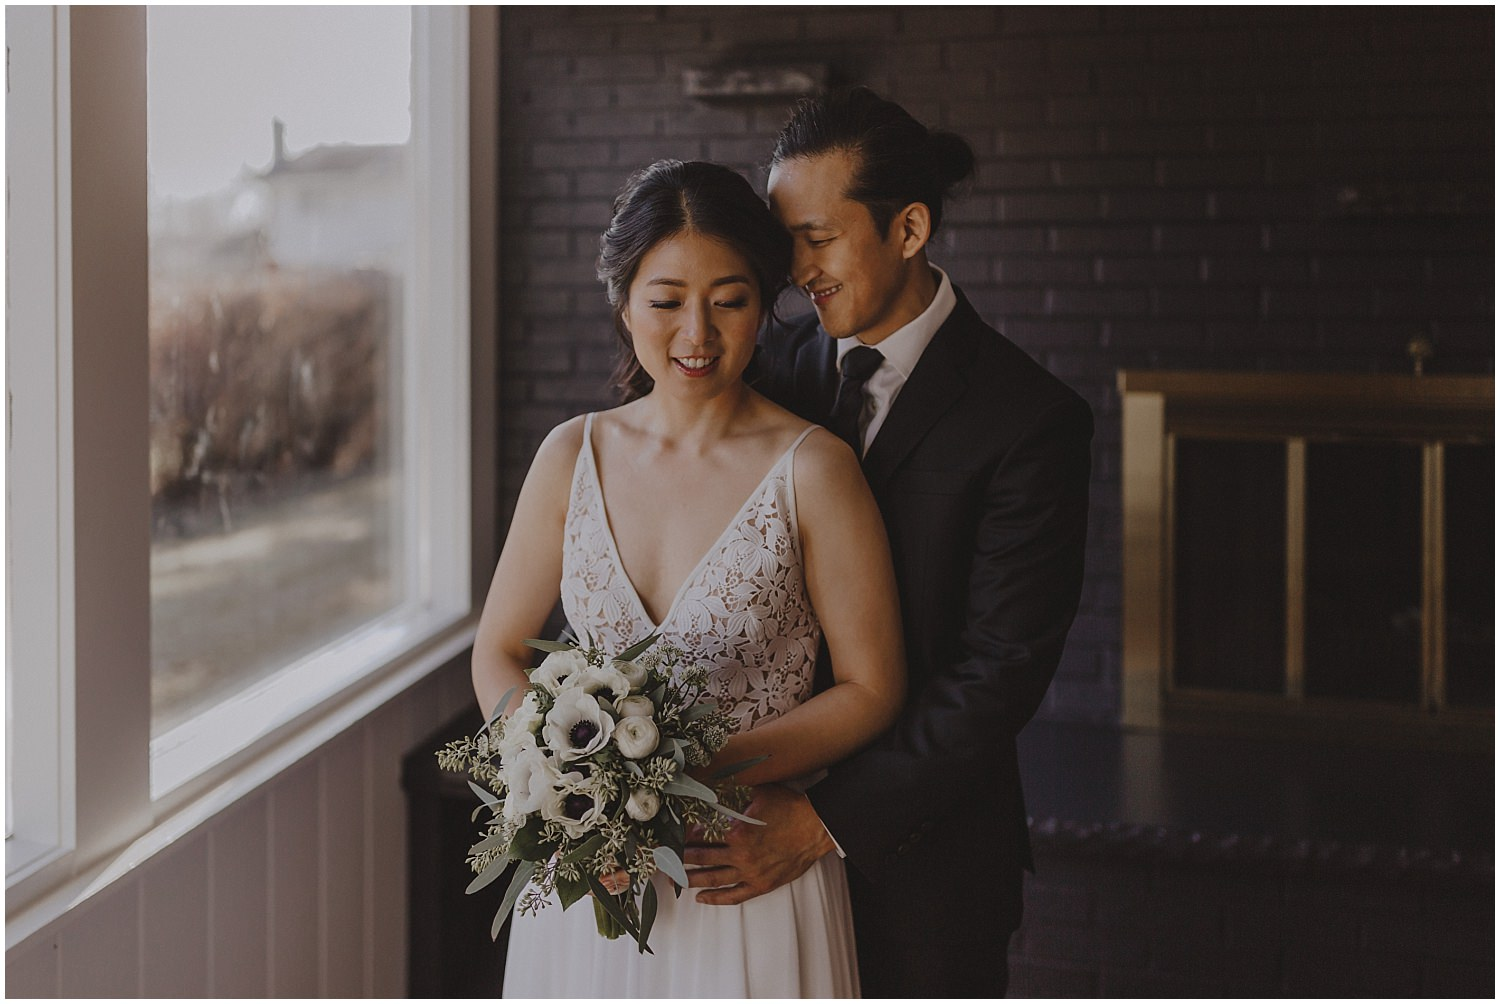 groom and bride holding each other Chicago wedding photographer kyle szeto